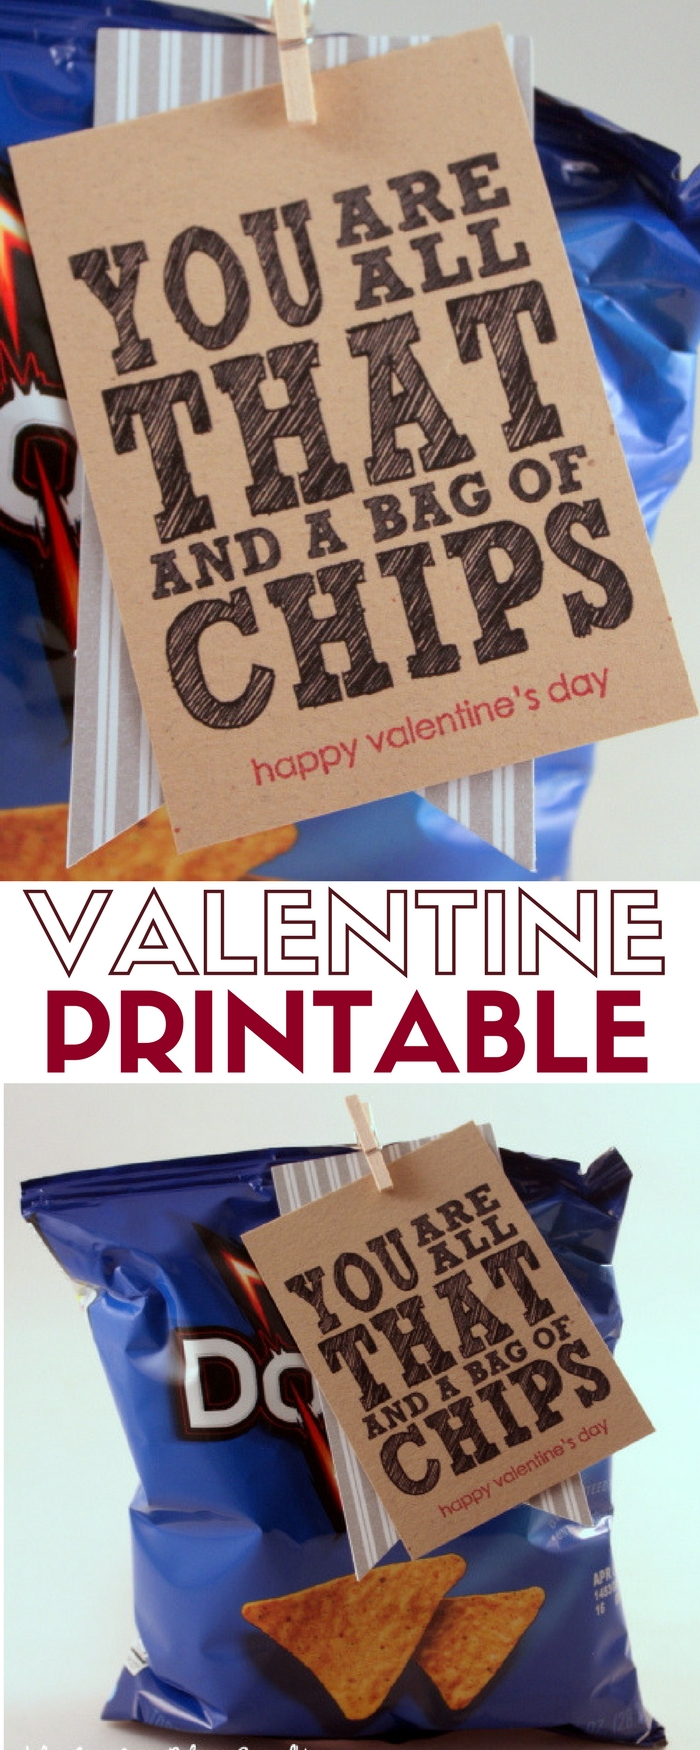 Create last minute Valentines for friends, coworkers, and classmates with this Free Valentine Printable. Easy DIY craft tutorial idea.